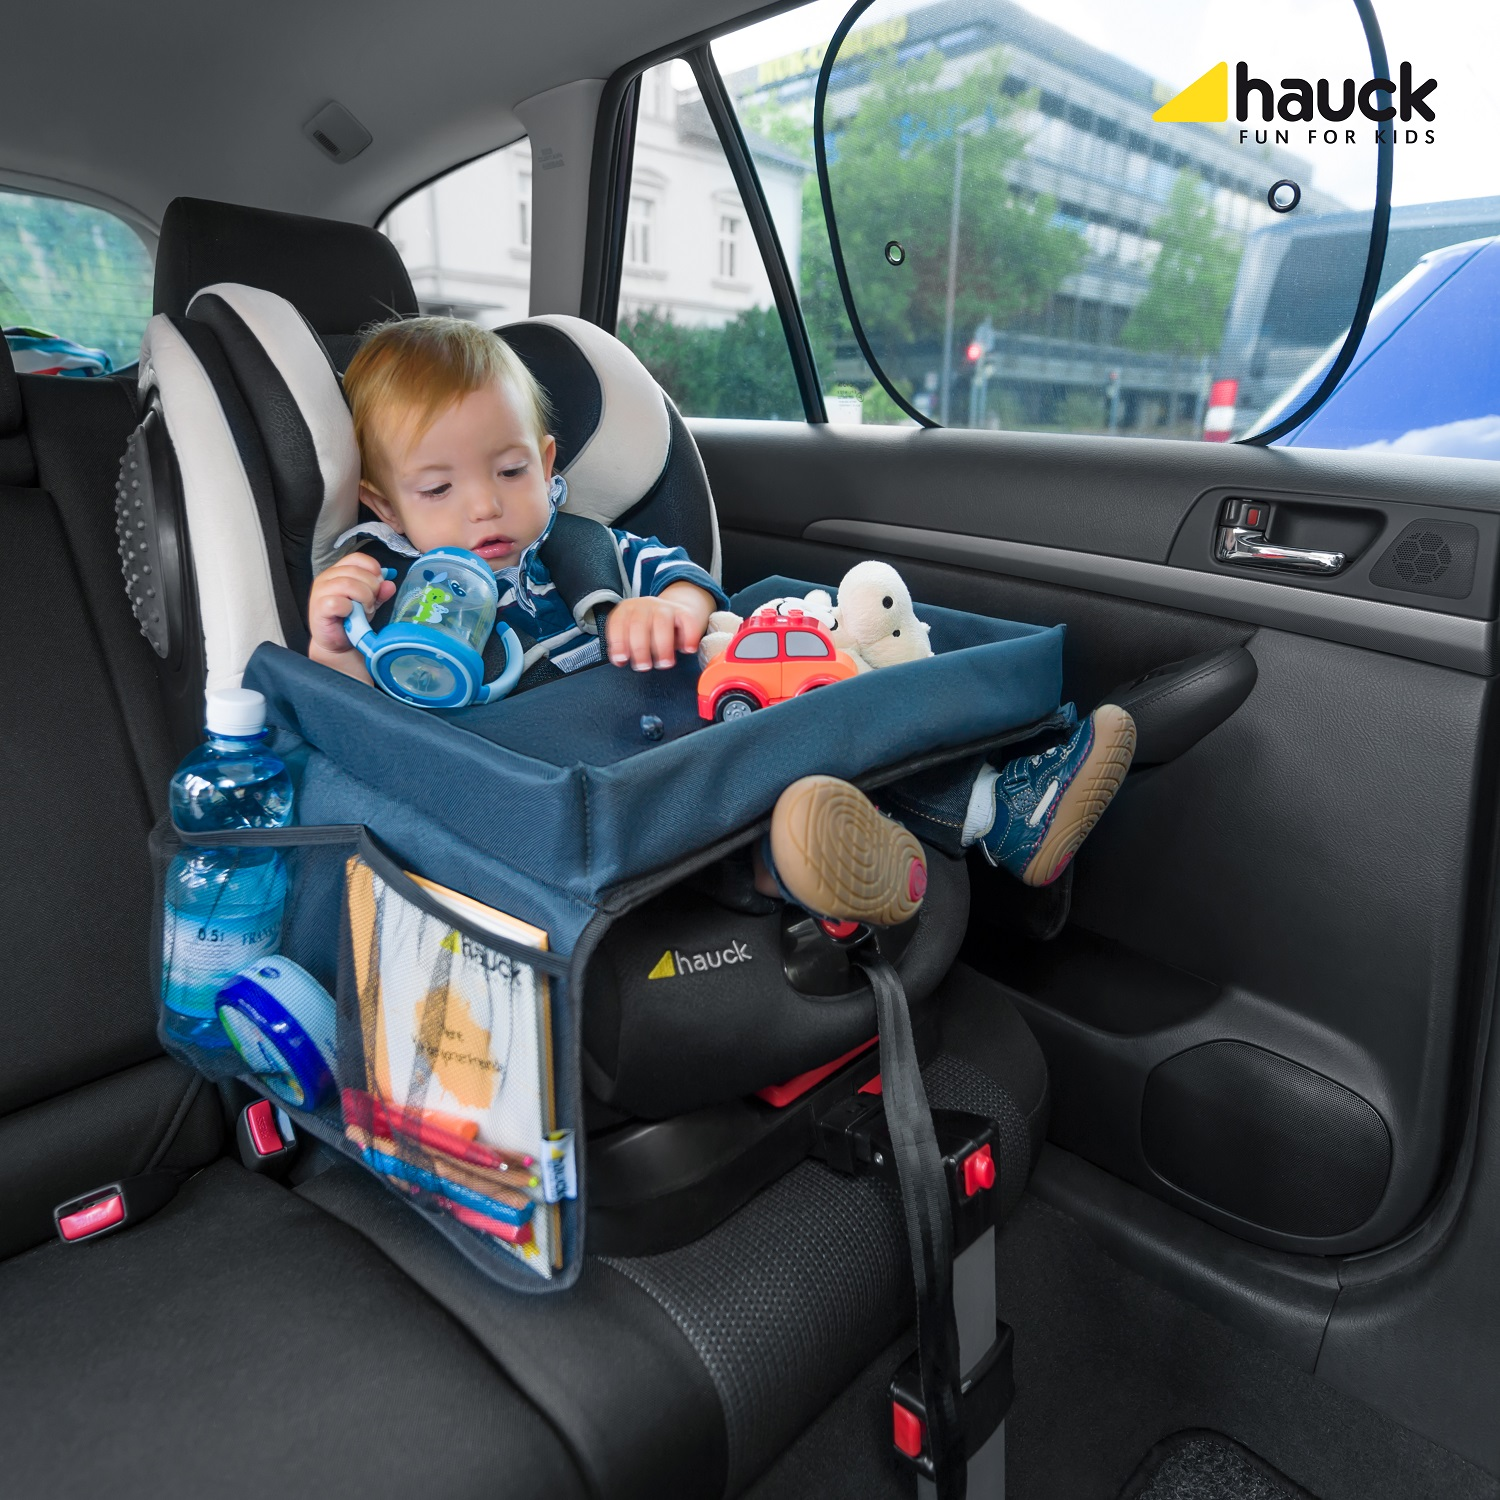 hauck travel play tray for car seats play on me buy at kidsroom car seats. Black Bedroom Furniture Sets. Home Design Ideas